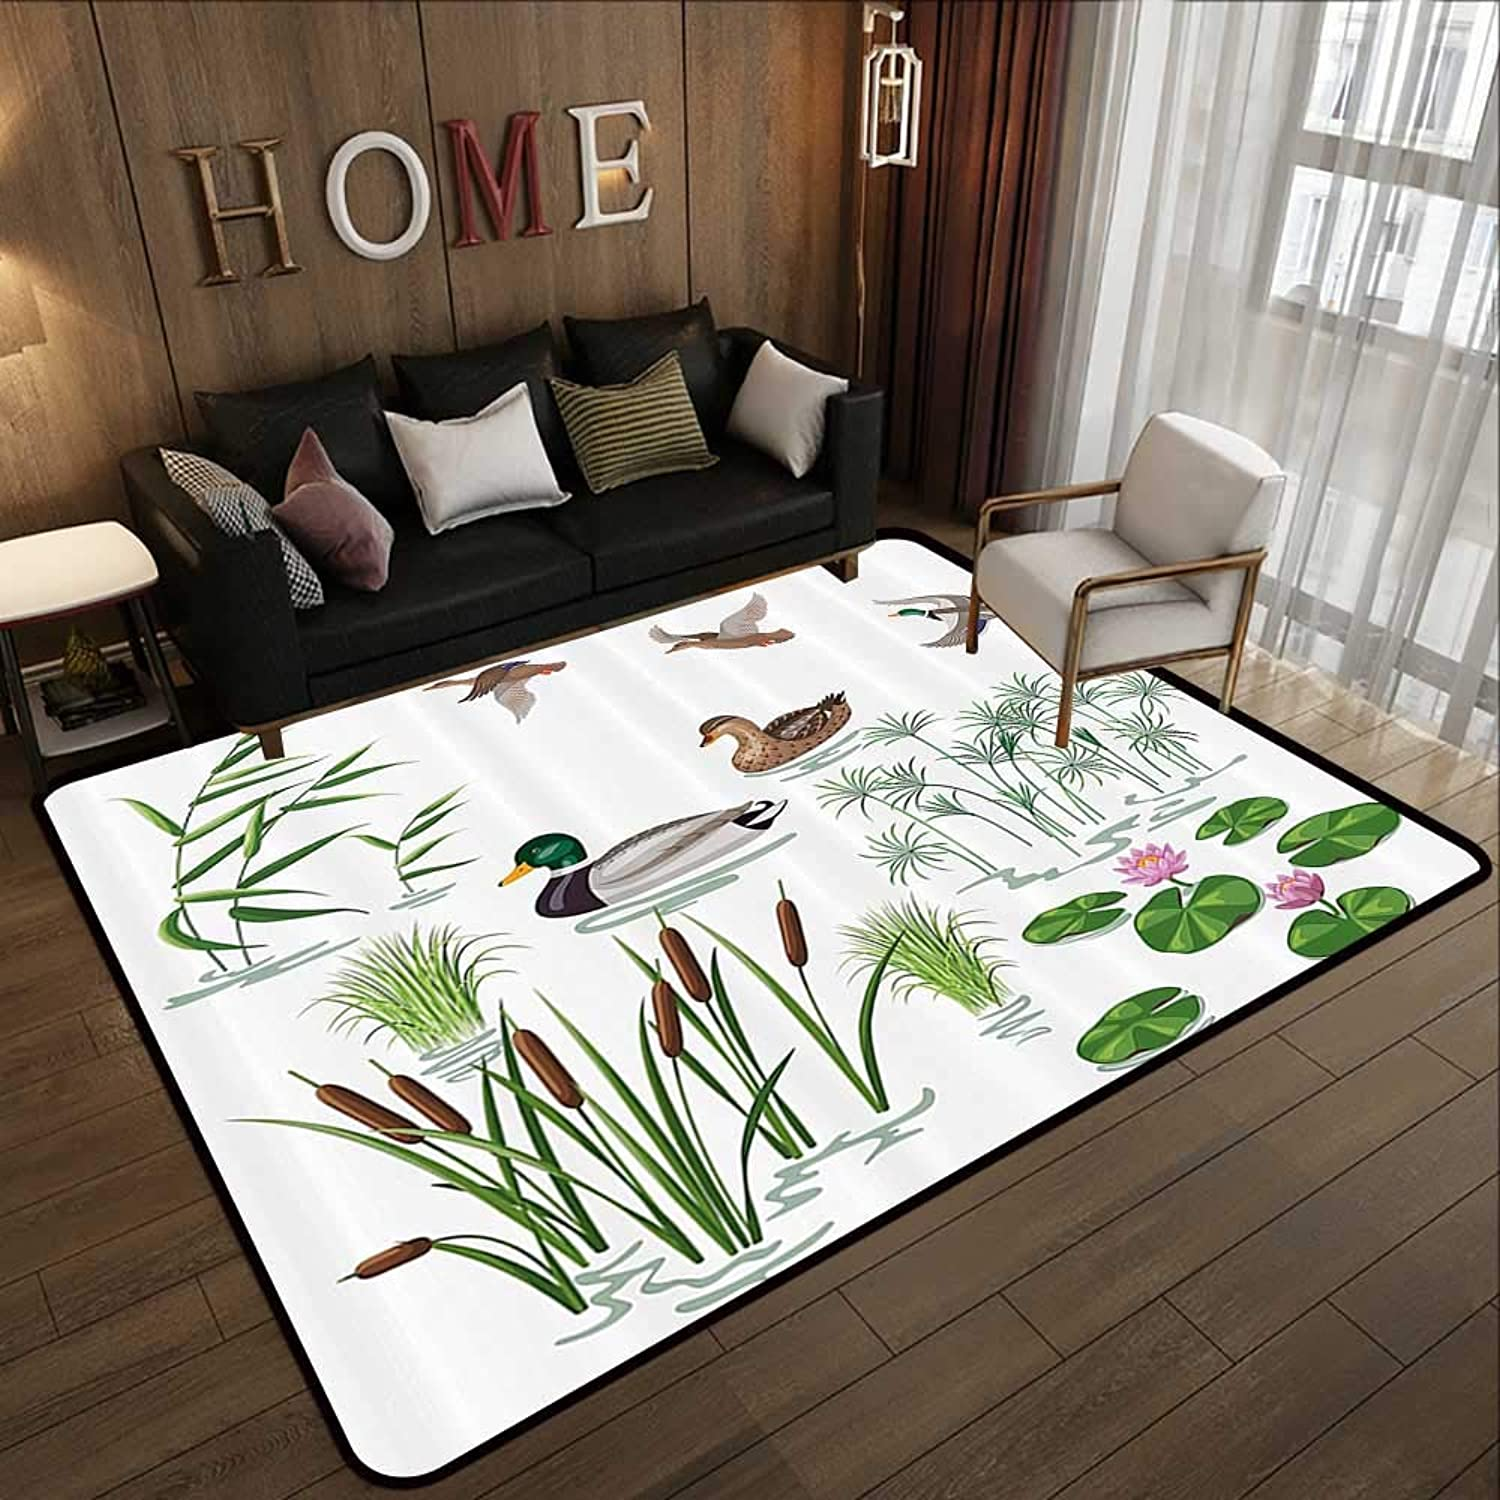 Carpet mat,Duck,Lake Animals and Plants with Lily Flowers Reeds and Cane in The Pond Nature Park Print,White Green 47 x 59  Floor Mat Entrance Doormat